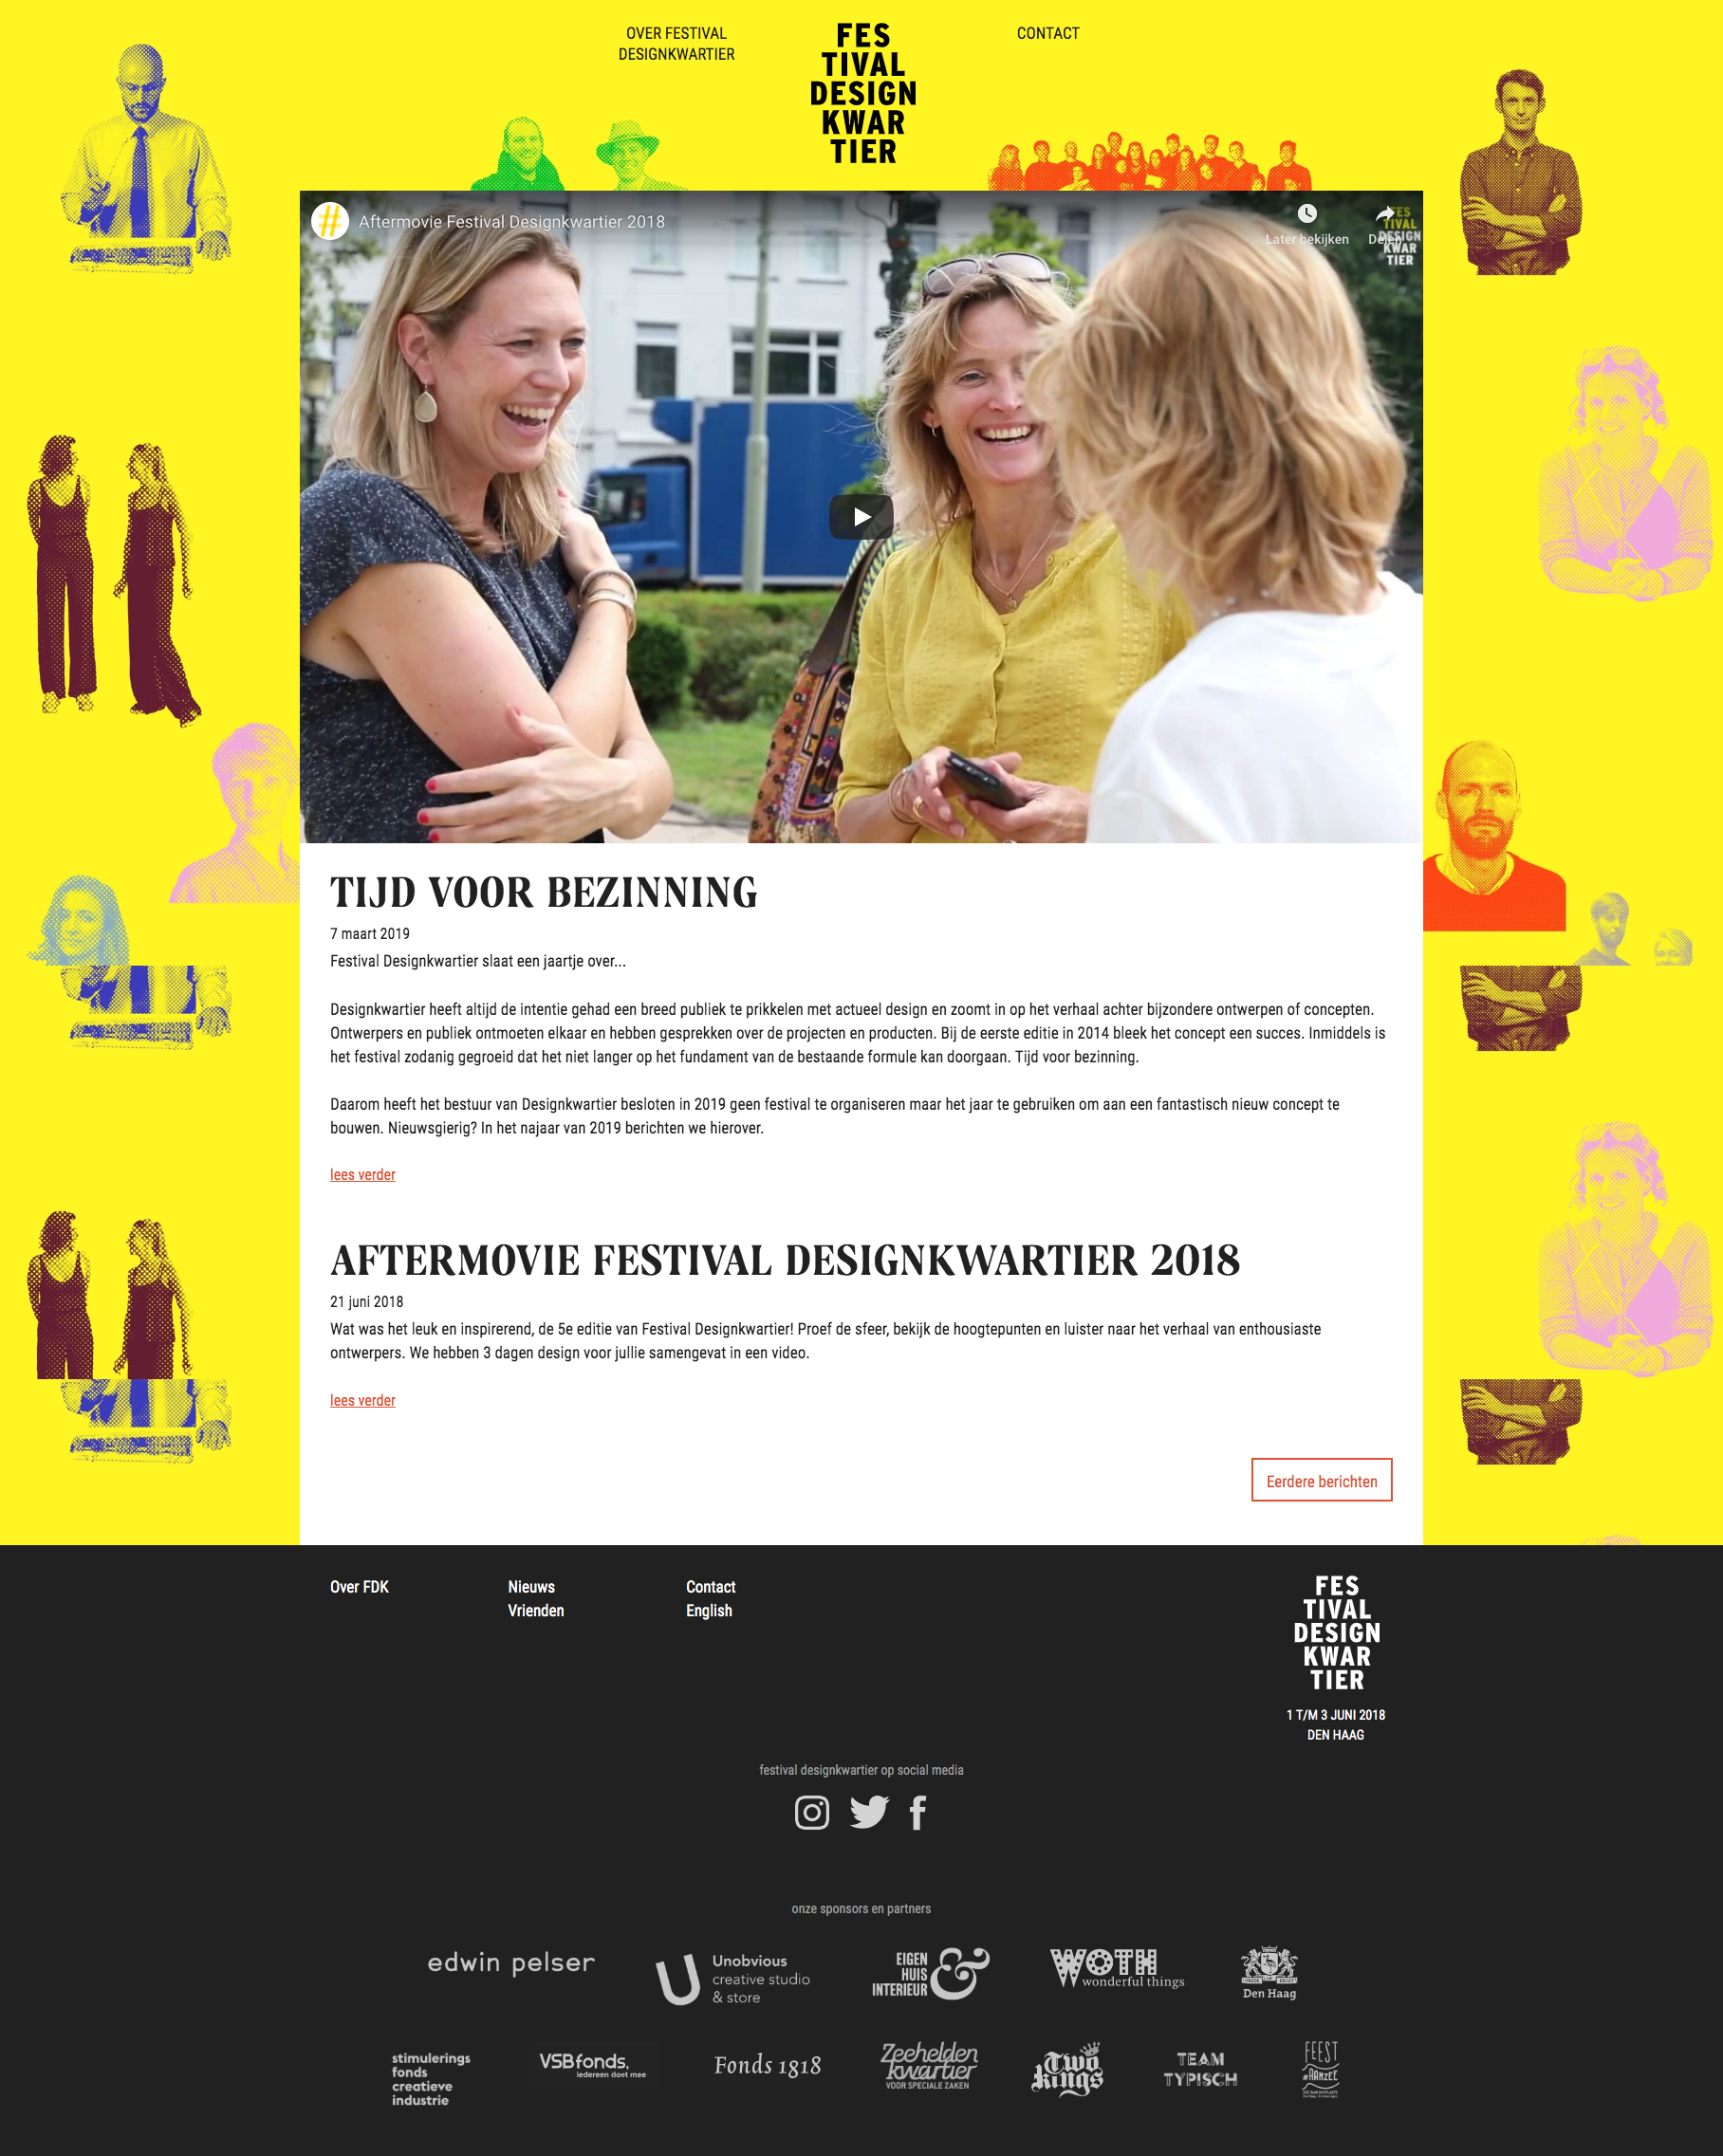 screencapture-festivaldesignkwartier-nl-2019-04-17-16_02_19.png